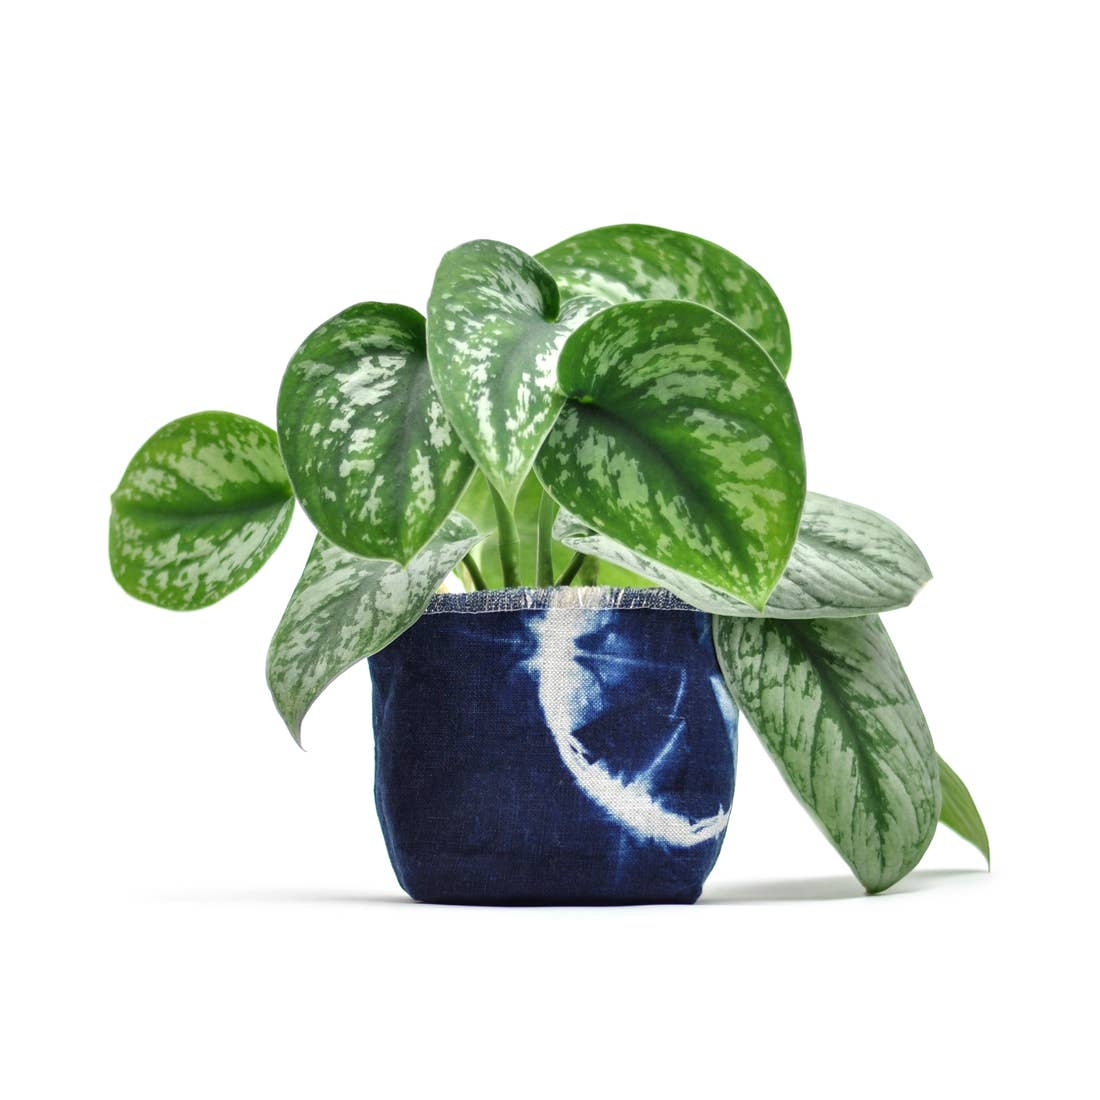 Gray Green Goods: Shibori Indigo Fabric Planter